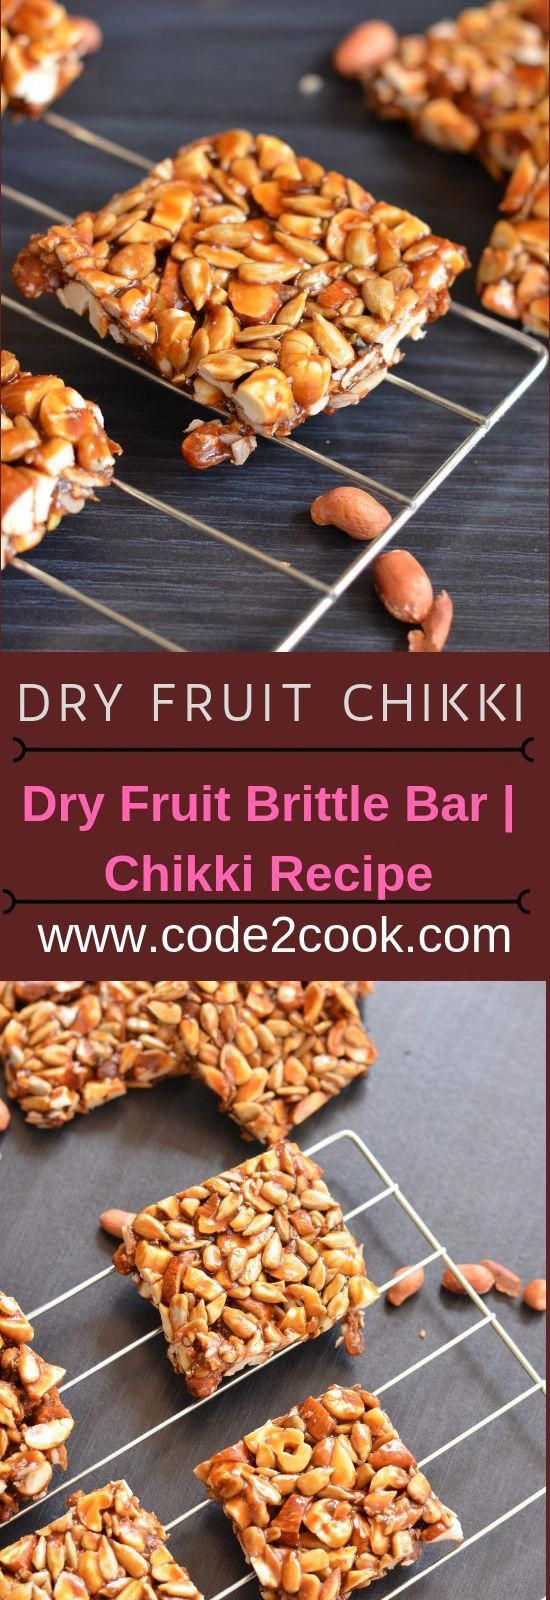 Dry fruit chikki is just another nutritious version of